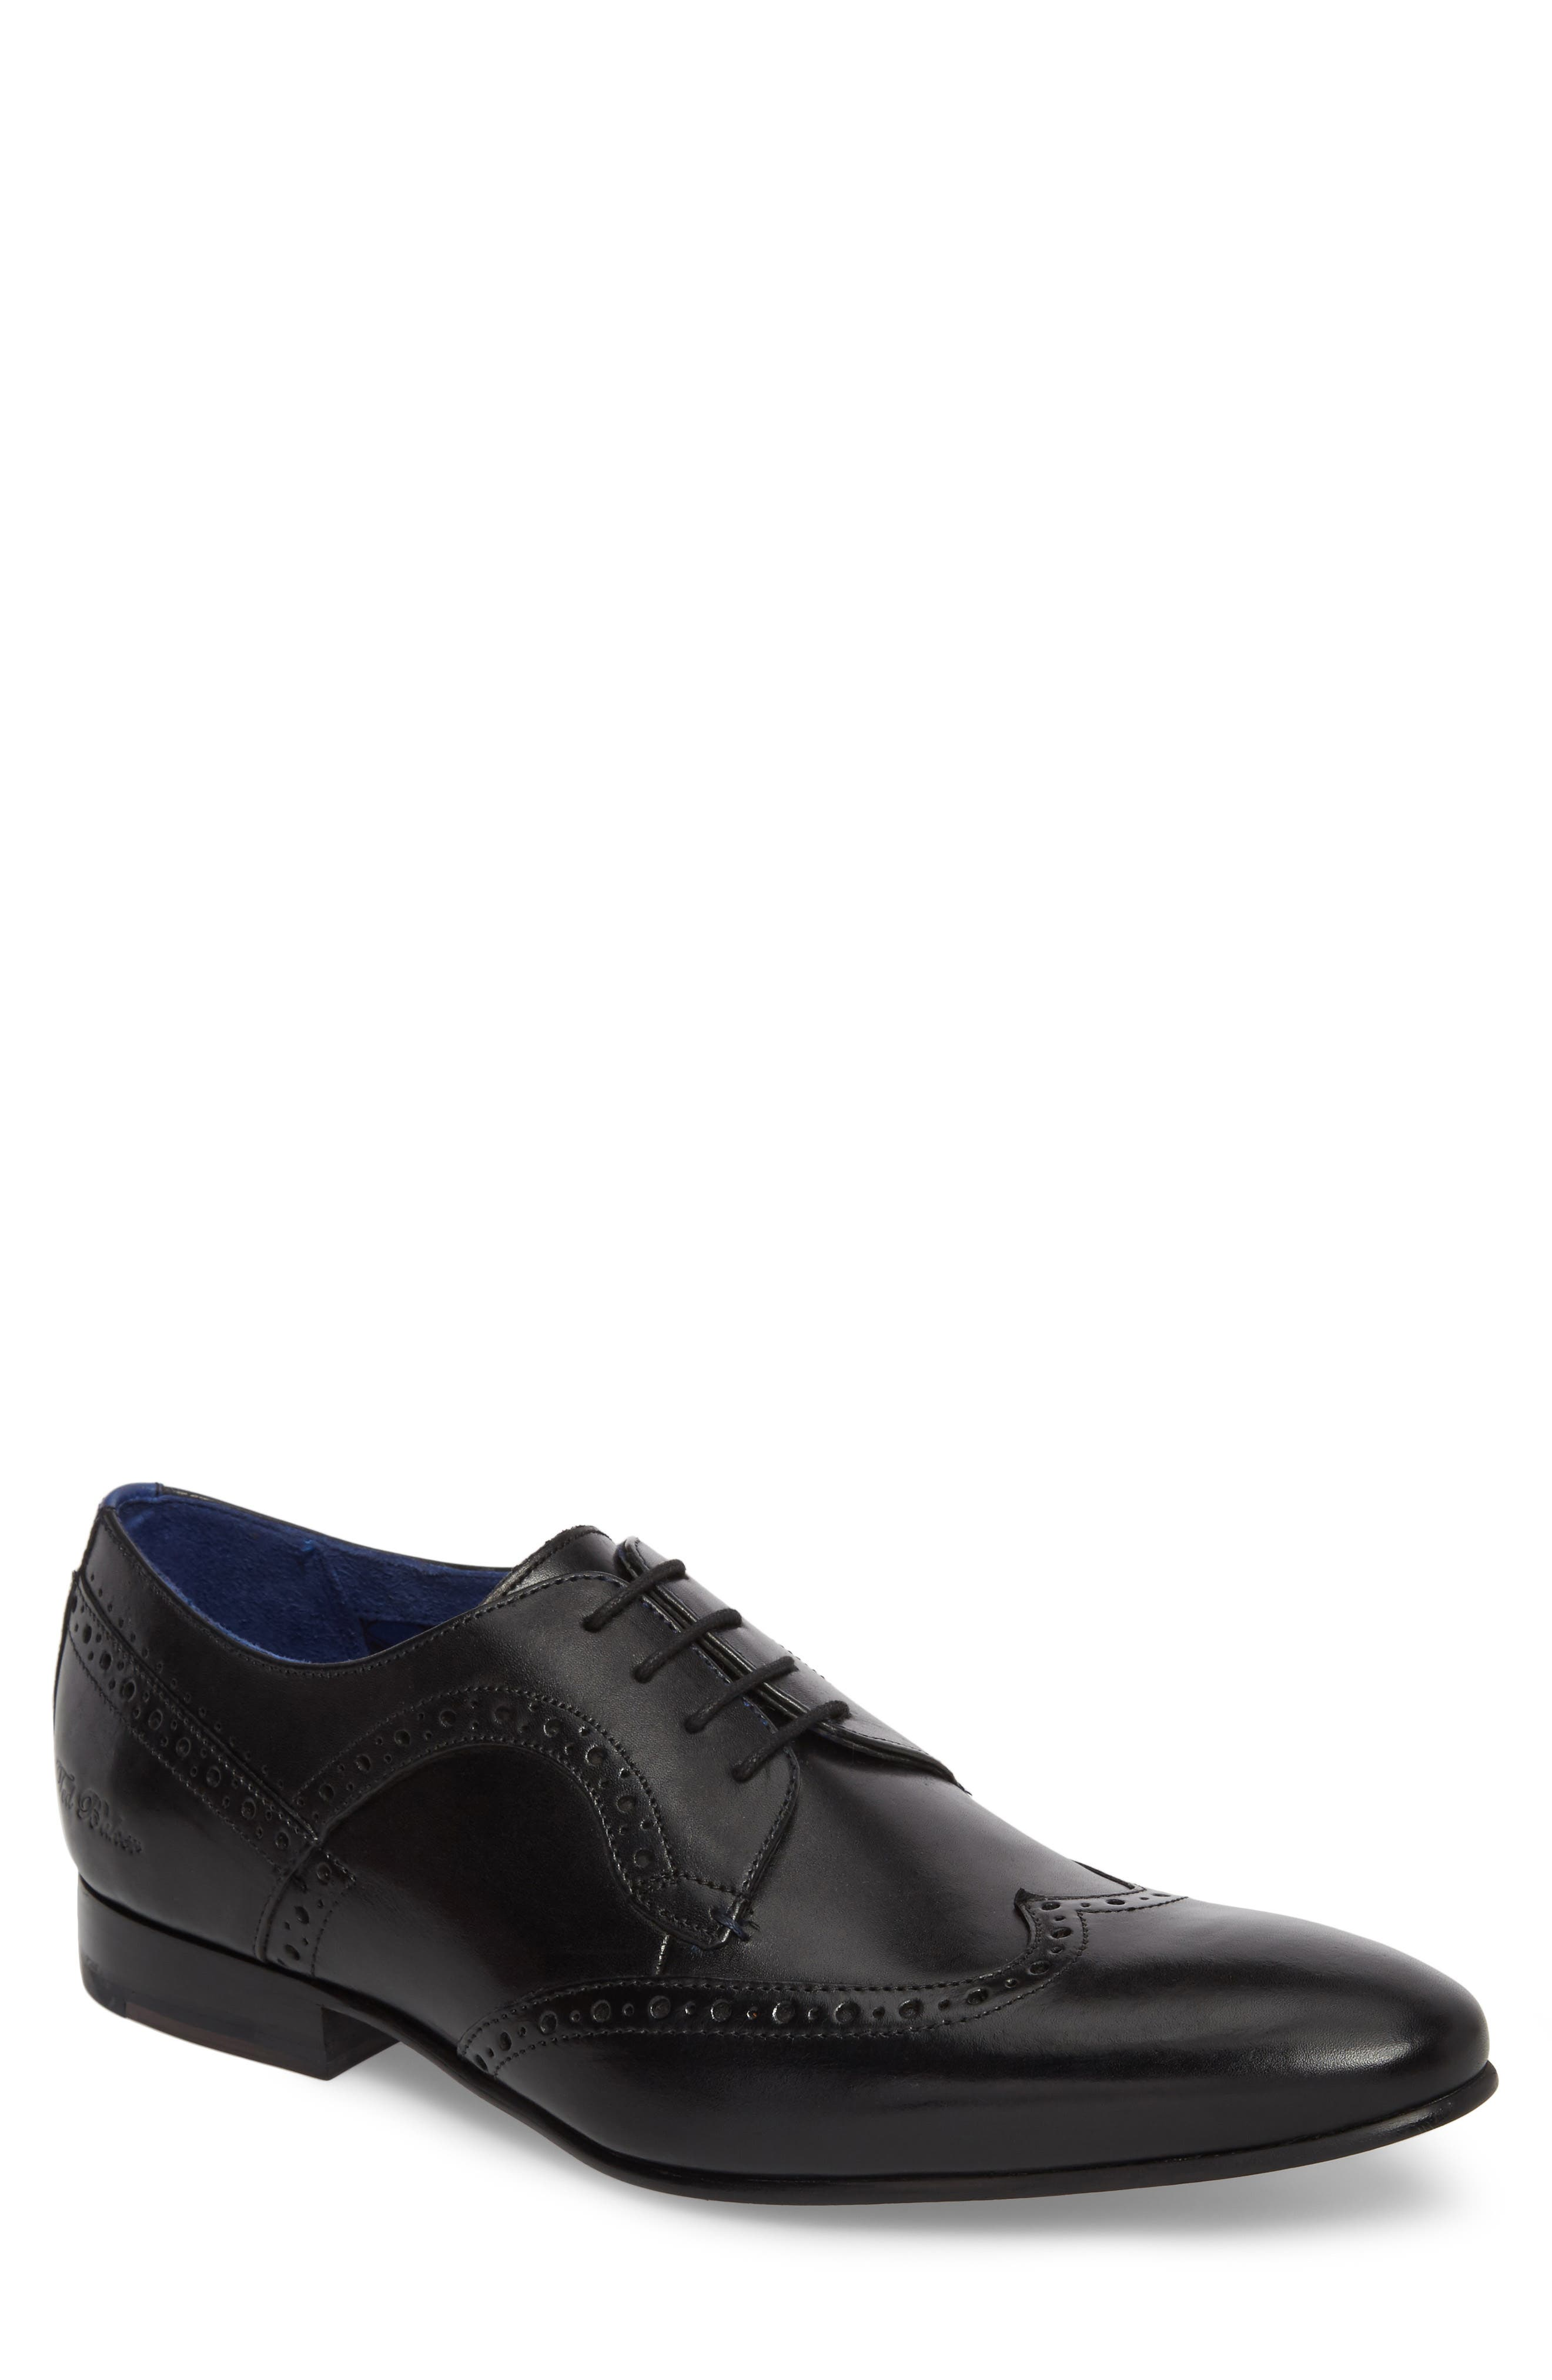 Ollivur Wingtip,                             Main thumbnail 1, color,                             Black Leather